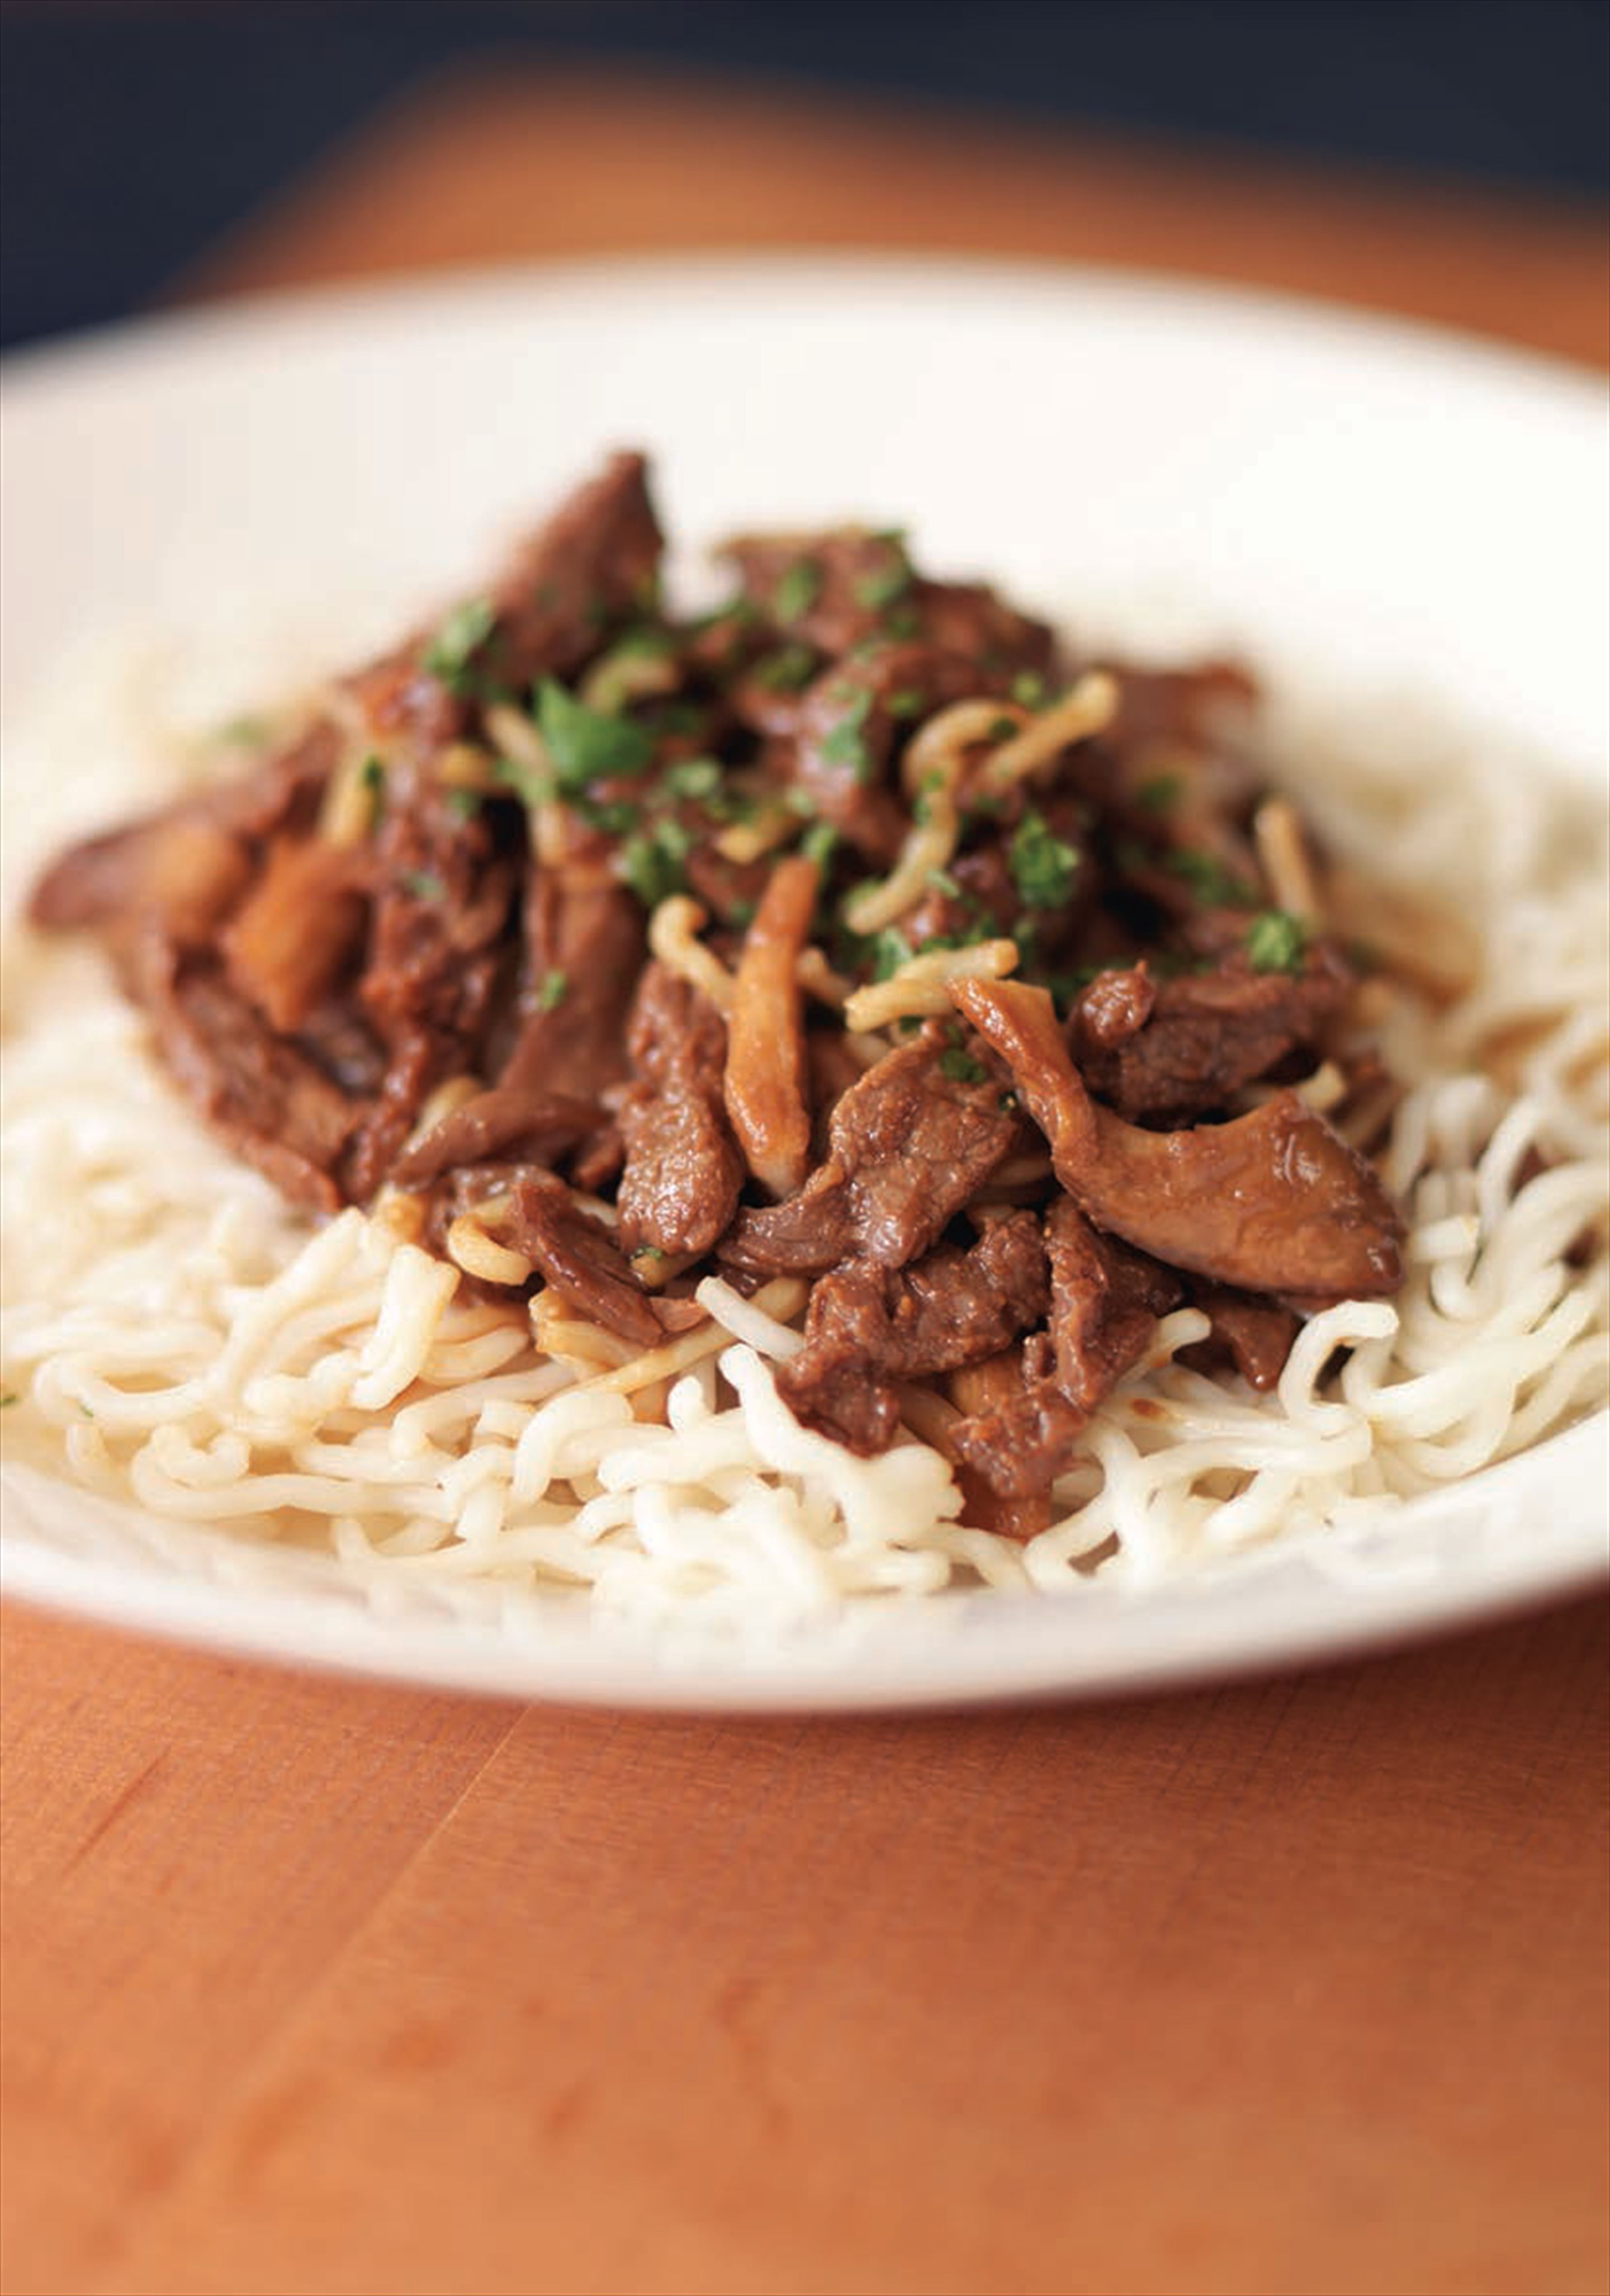 Miso beef stir-fry with noodles